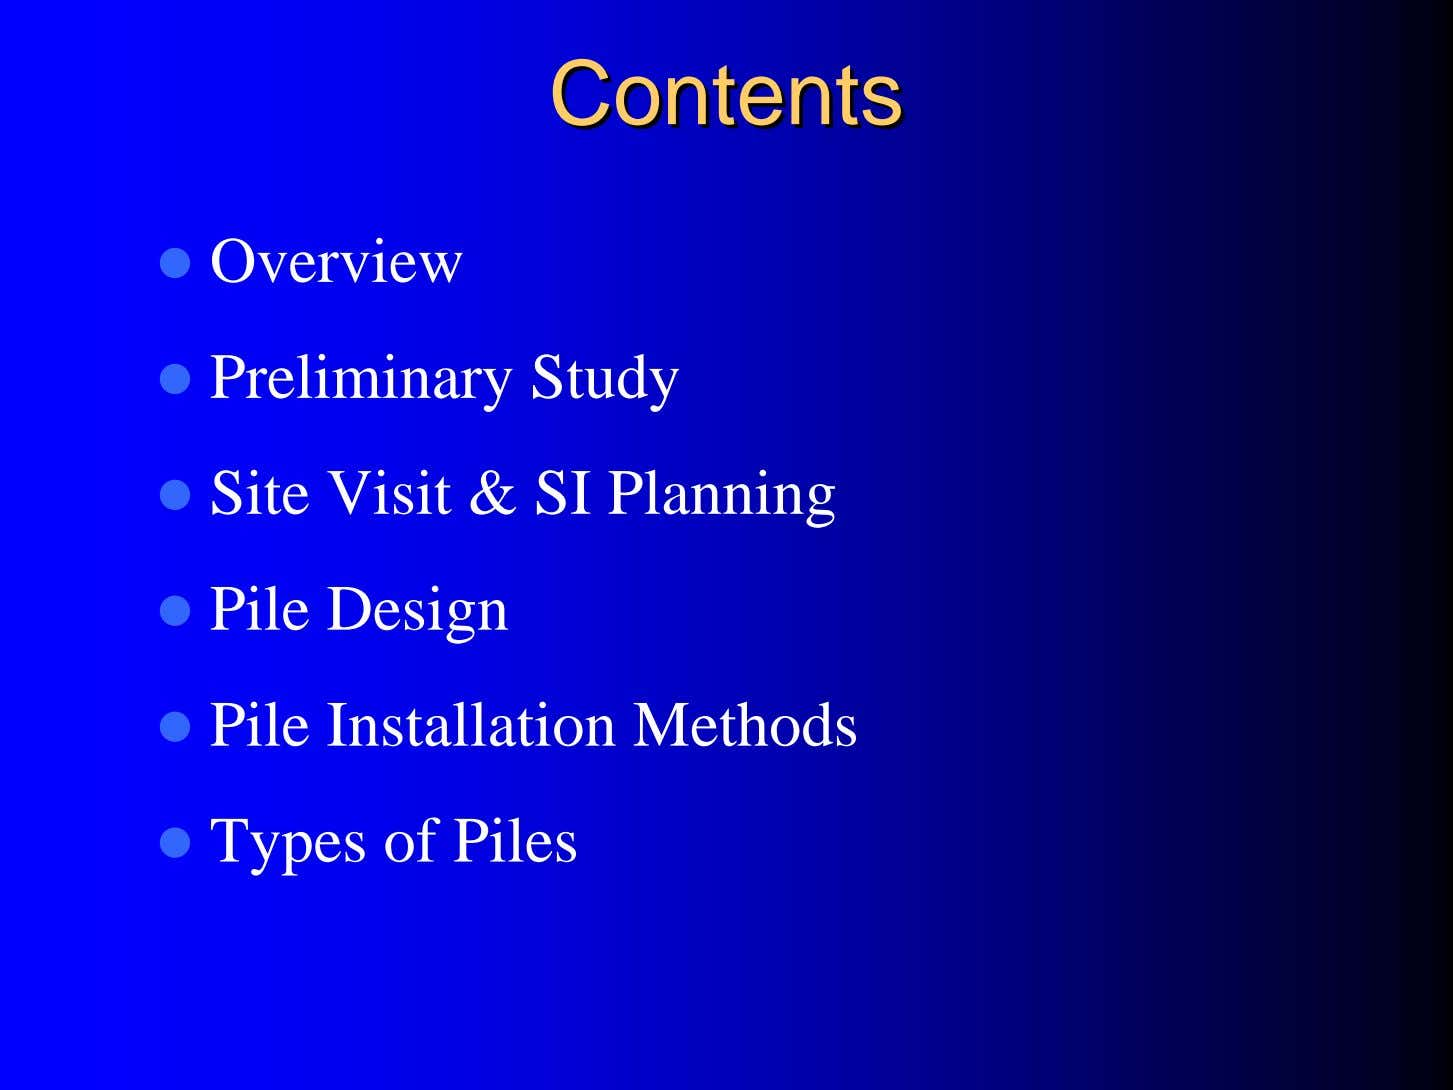 ContentsContents Overview Preliminary Study Site Visit & SI Planning Pile Design Pile Installation Methods